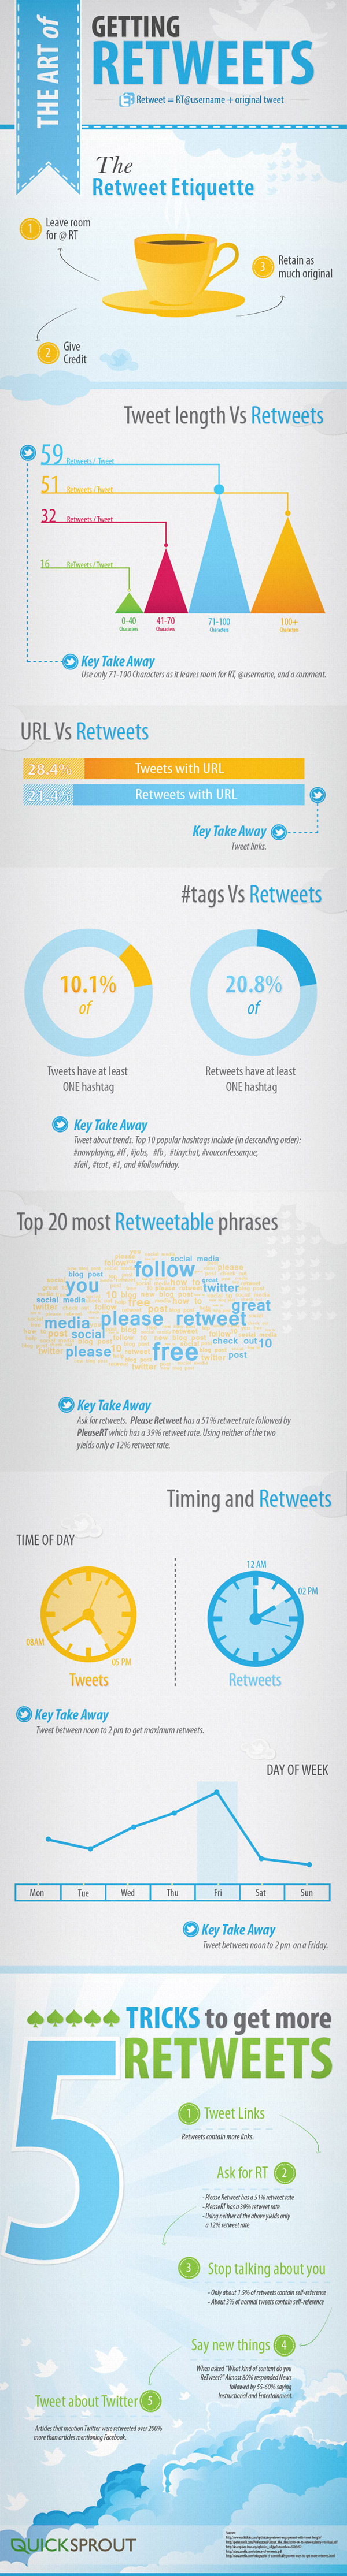 the art of getting twitter retweets infographic